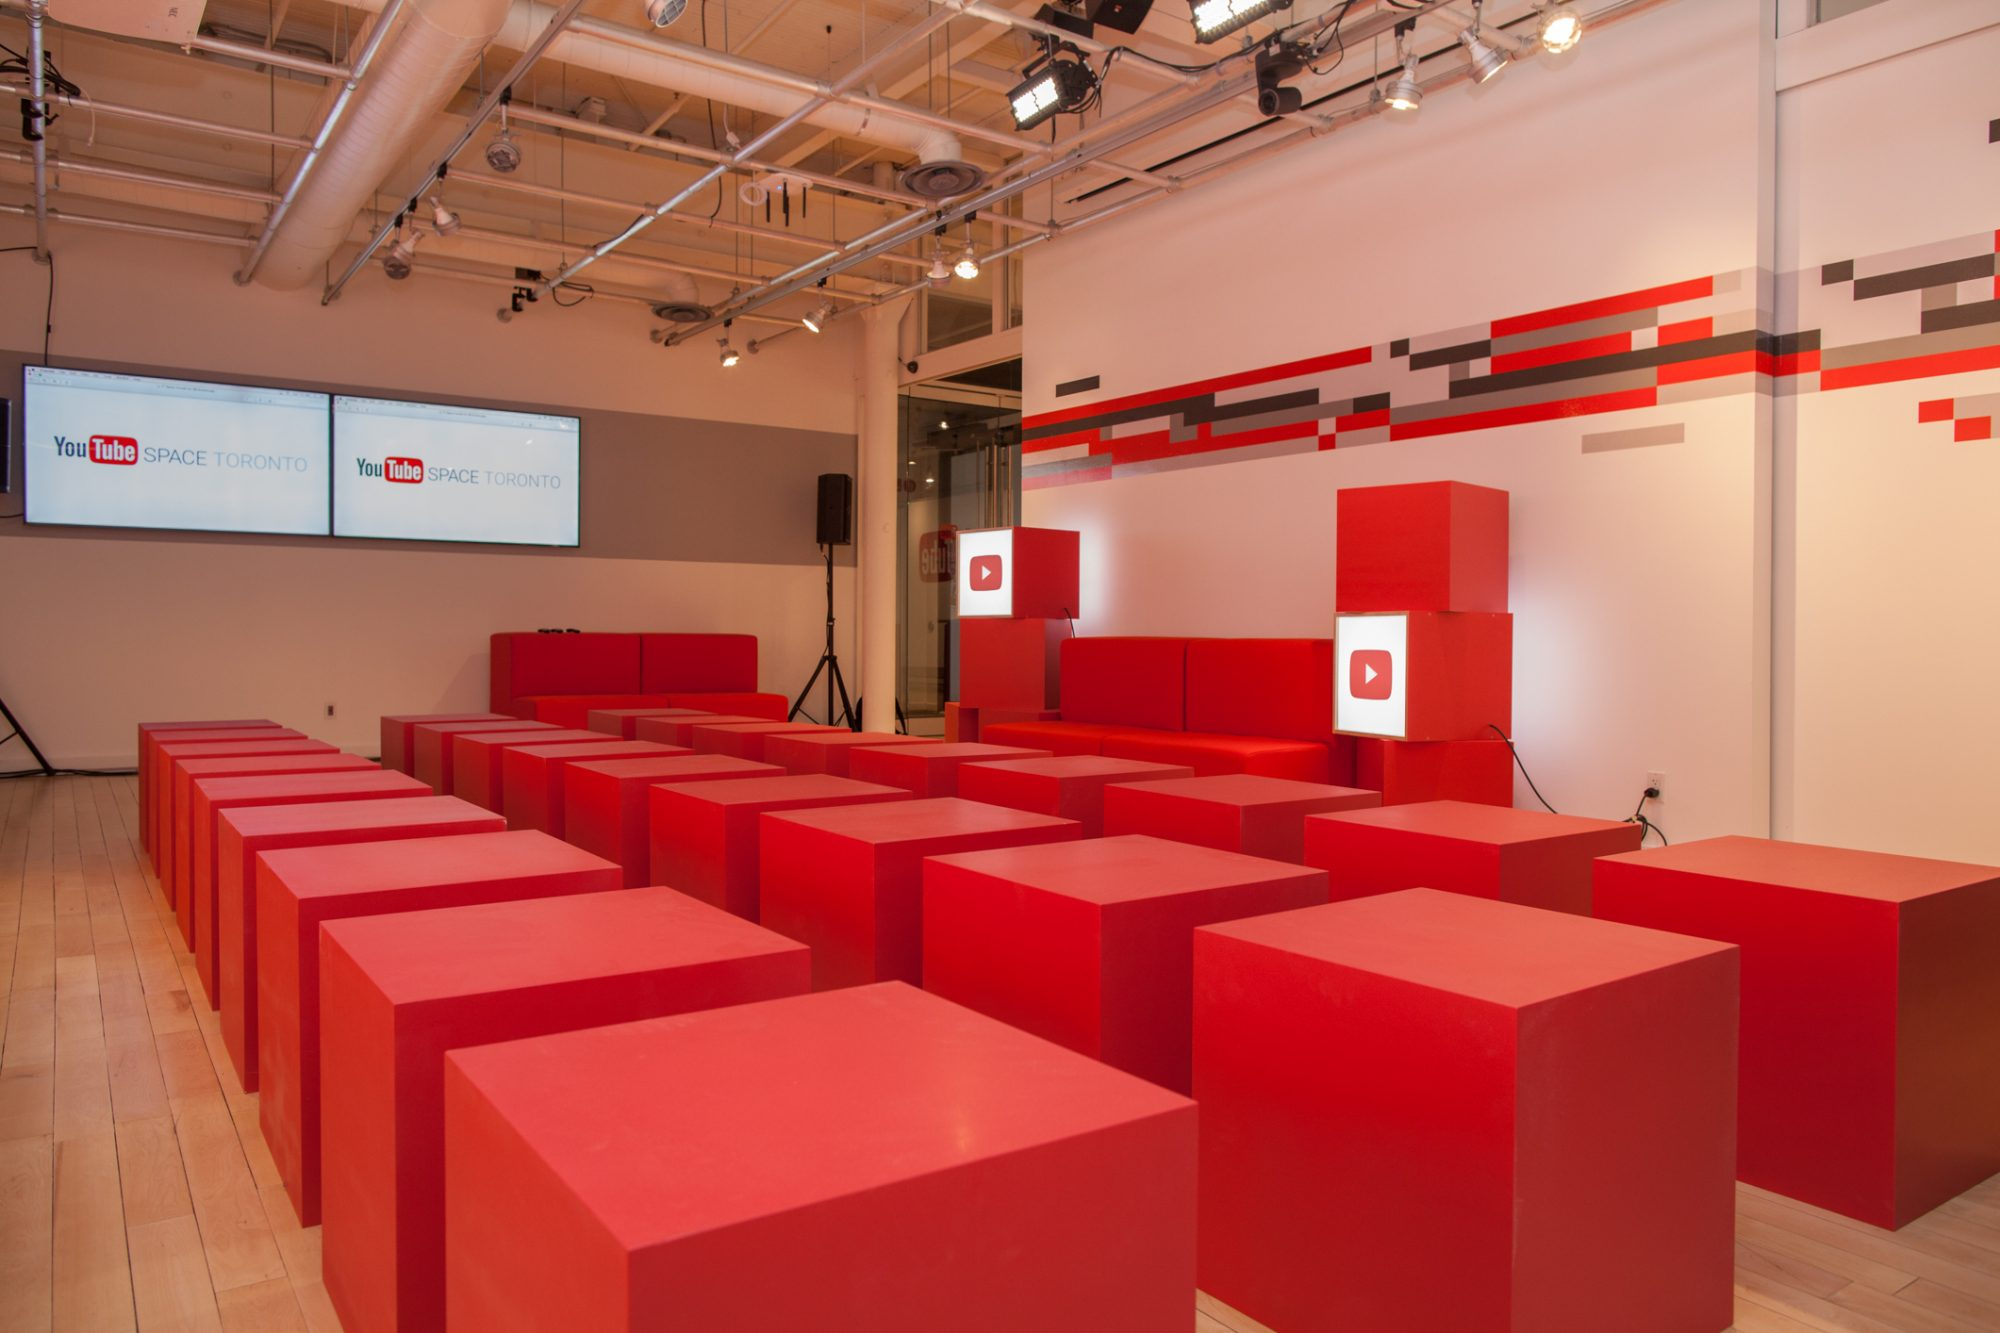 YouTube Space Toronto - event space